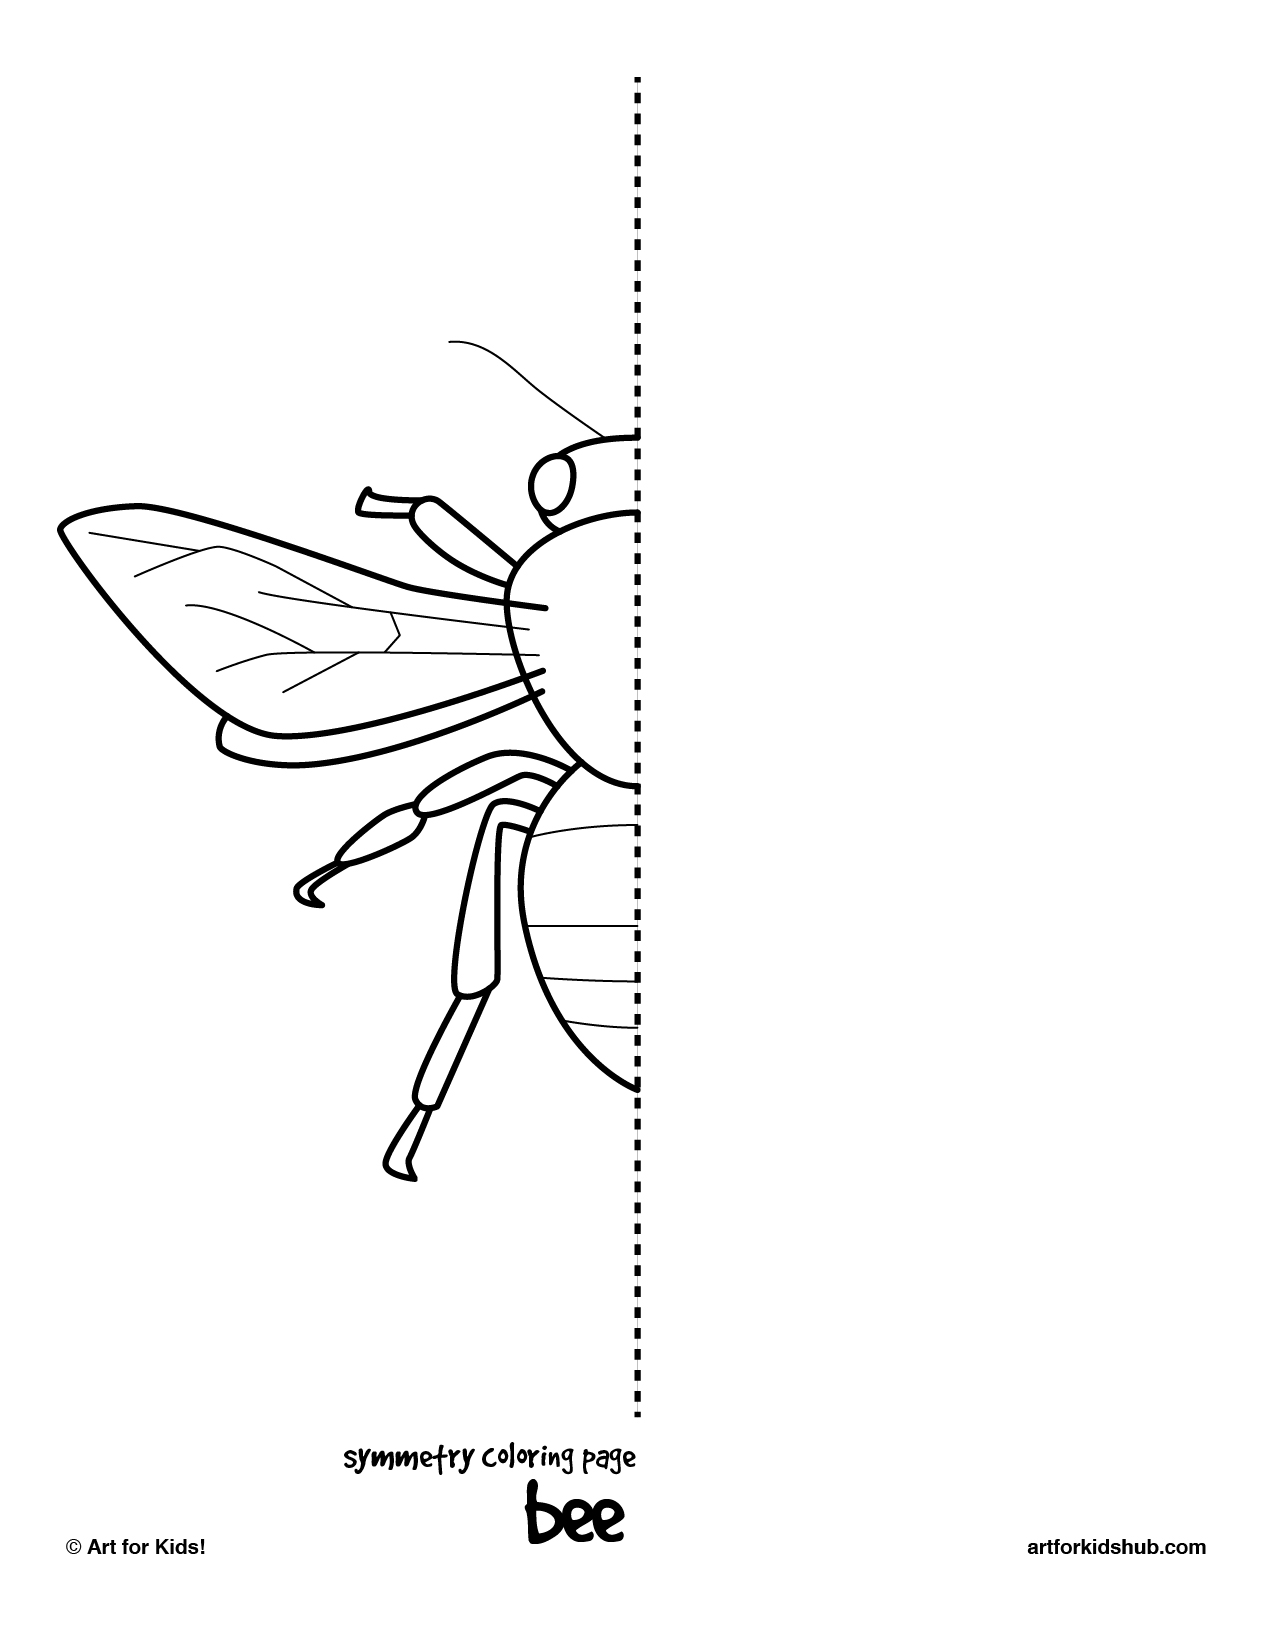 Tekenen moreover 4870145 besides Music Art in addition Immagini Stock Libere Da Diritti Insieme Dei Fari Del Fumetto Icone Disegno Matita Image38161369 moreover Butterfly Coloring Pages. on simple house drawings